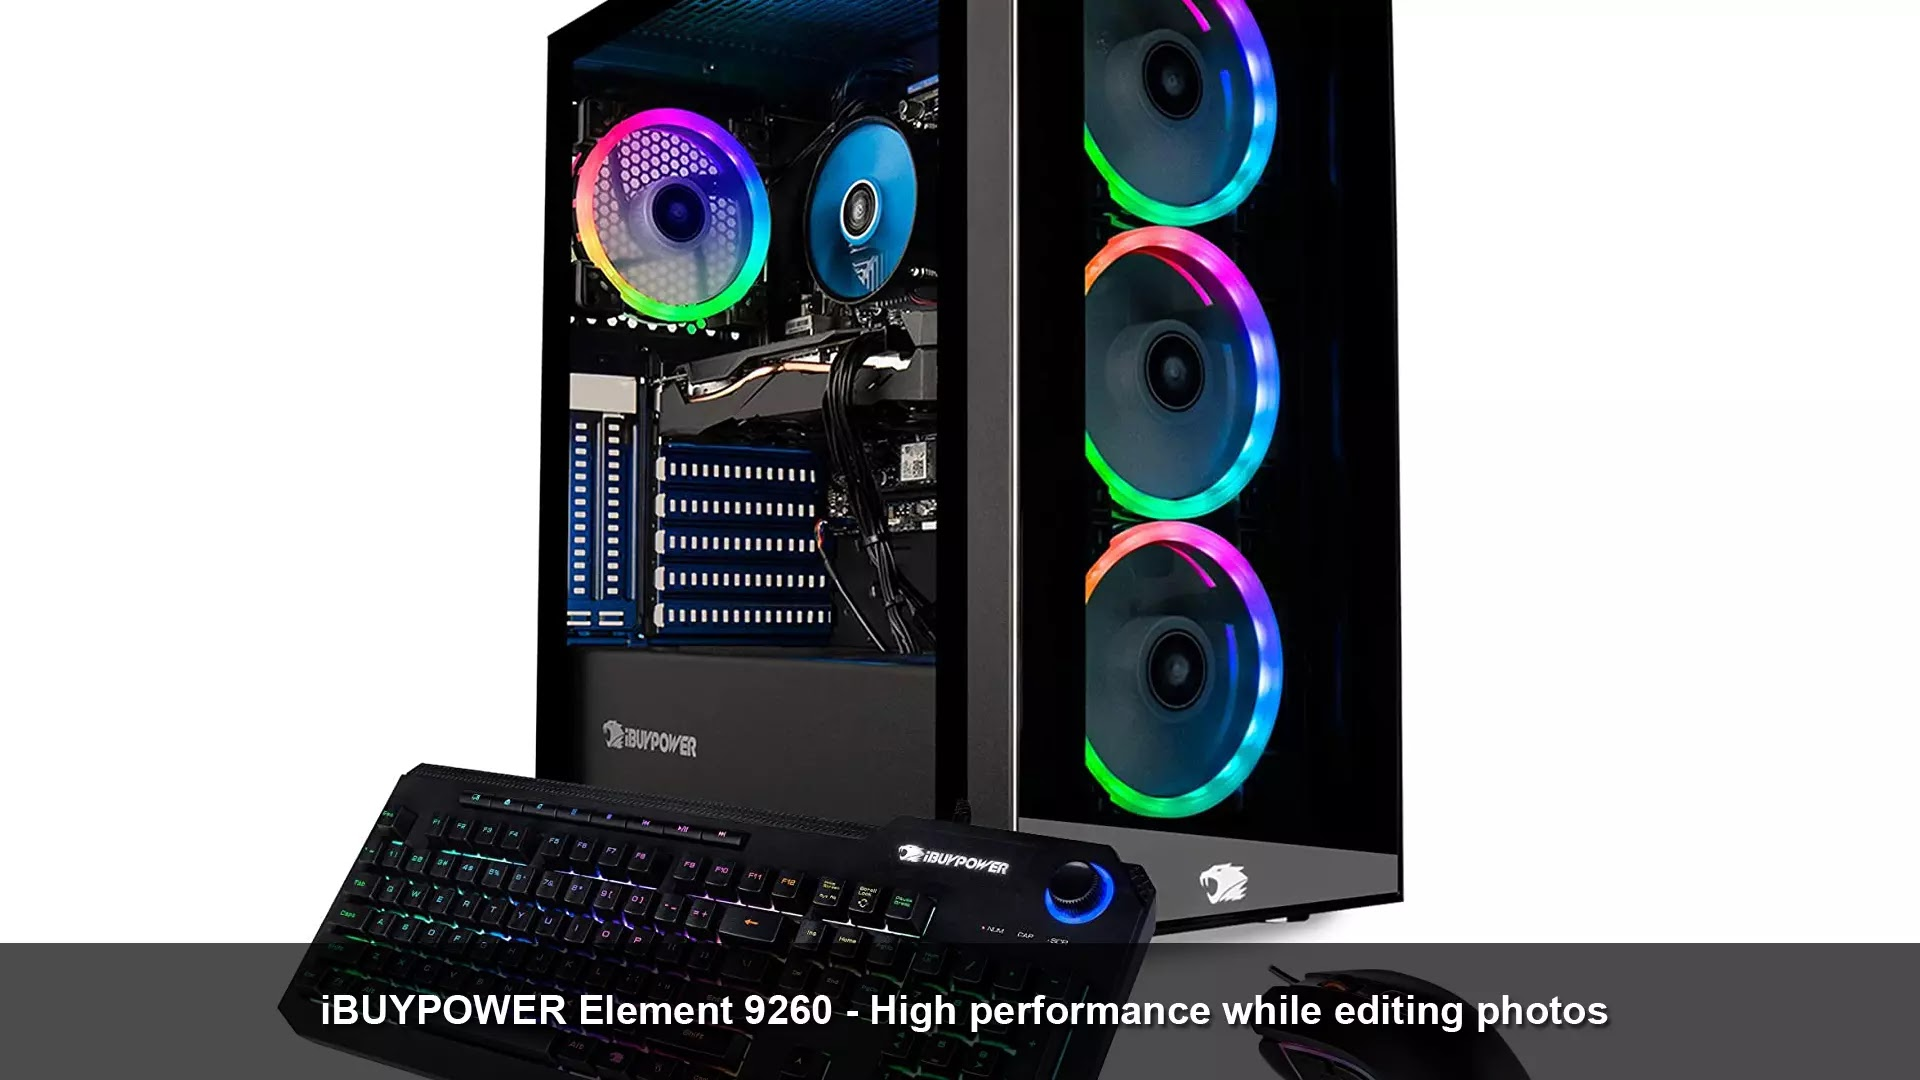 iBUYPOWER Element 9260 - high performance while editing photos